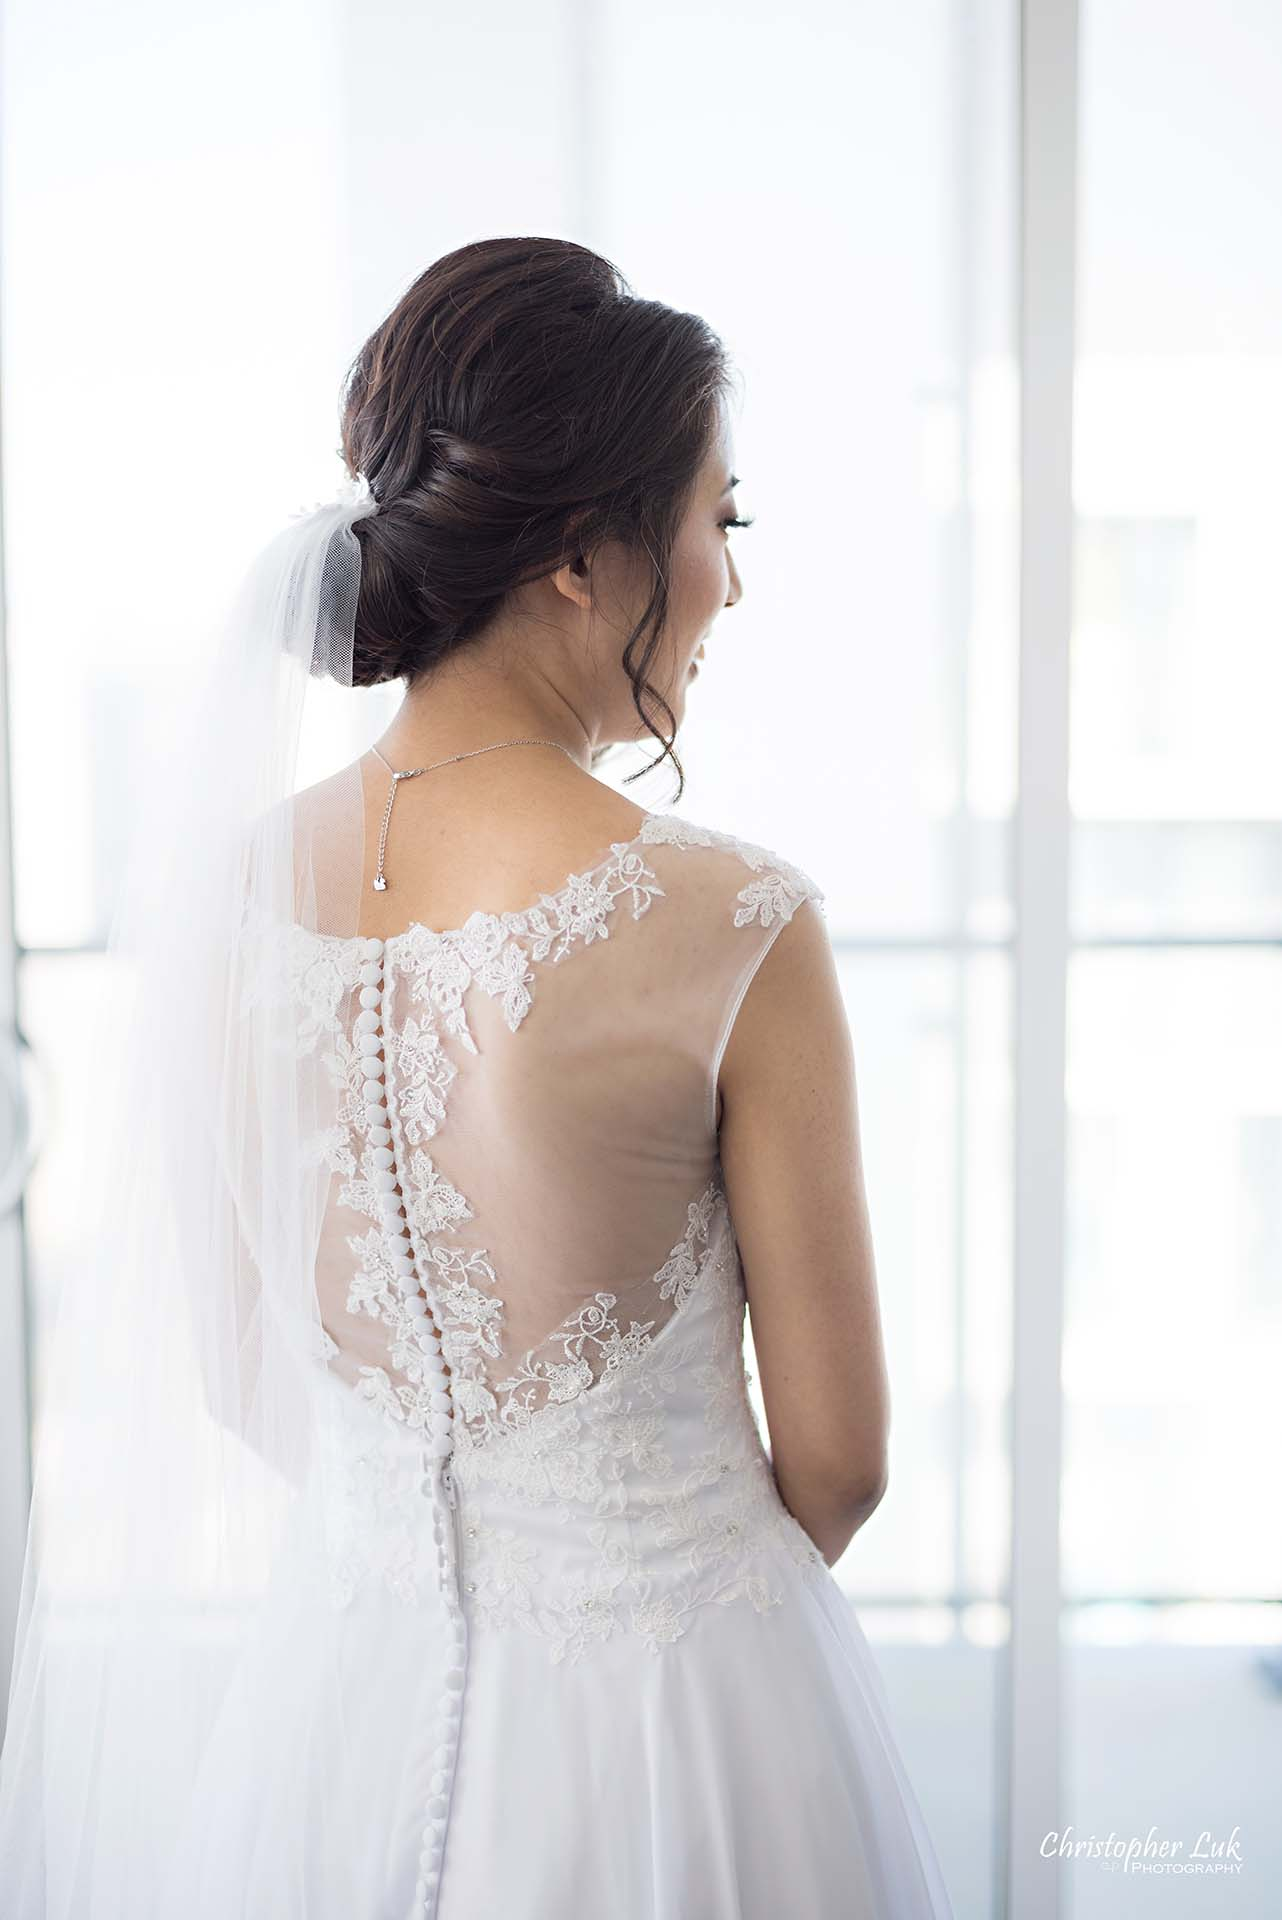 Christopher Luk Toronto Wedding Photographer - Natural Candid Photojournalistic Bride Getting Ready Veil Back of See Through Lace White Dress